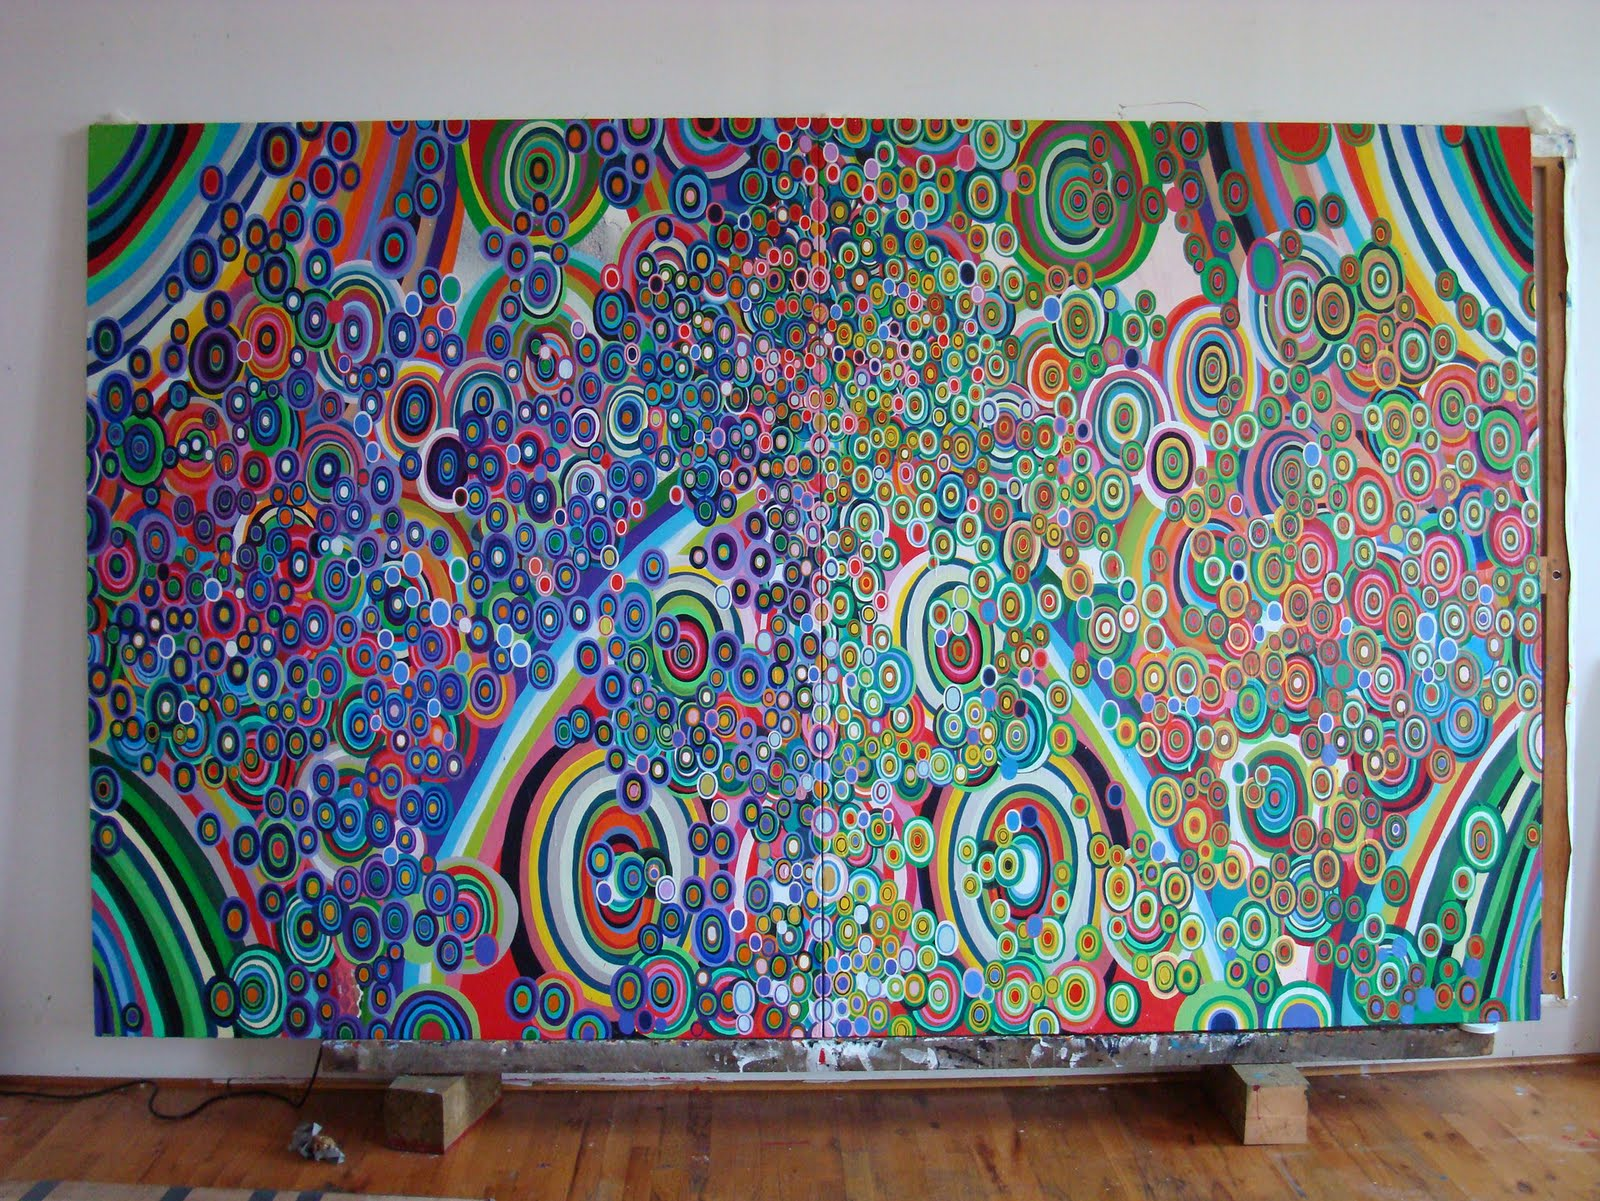 Art inspiration jeff lewis artist interview for Mural inspiration